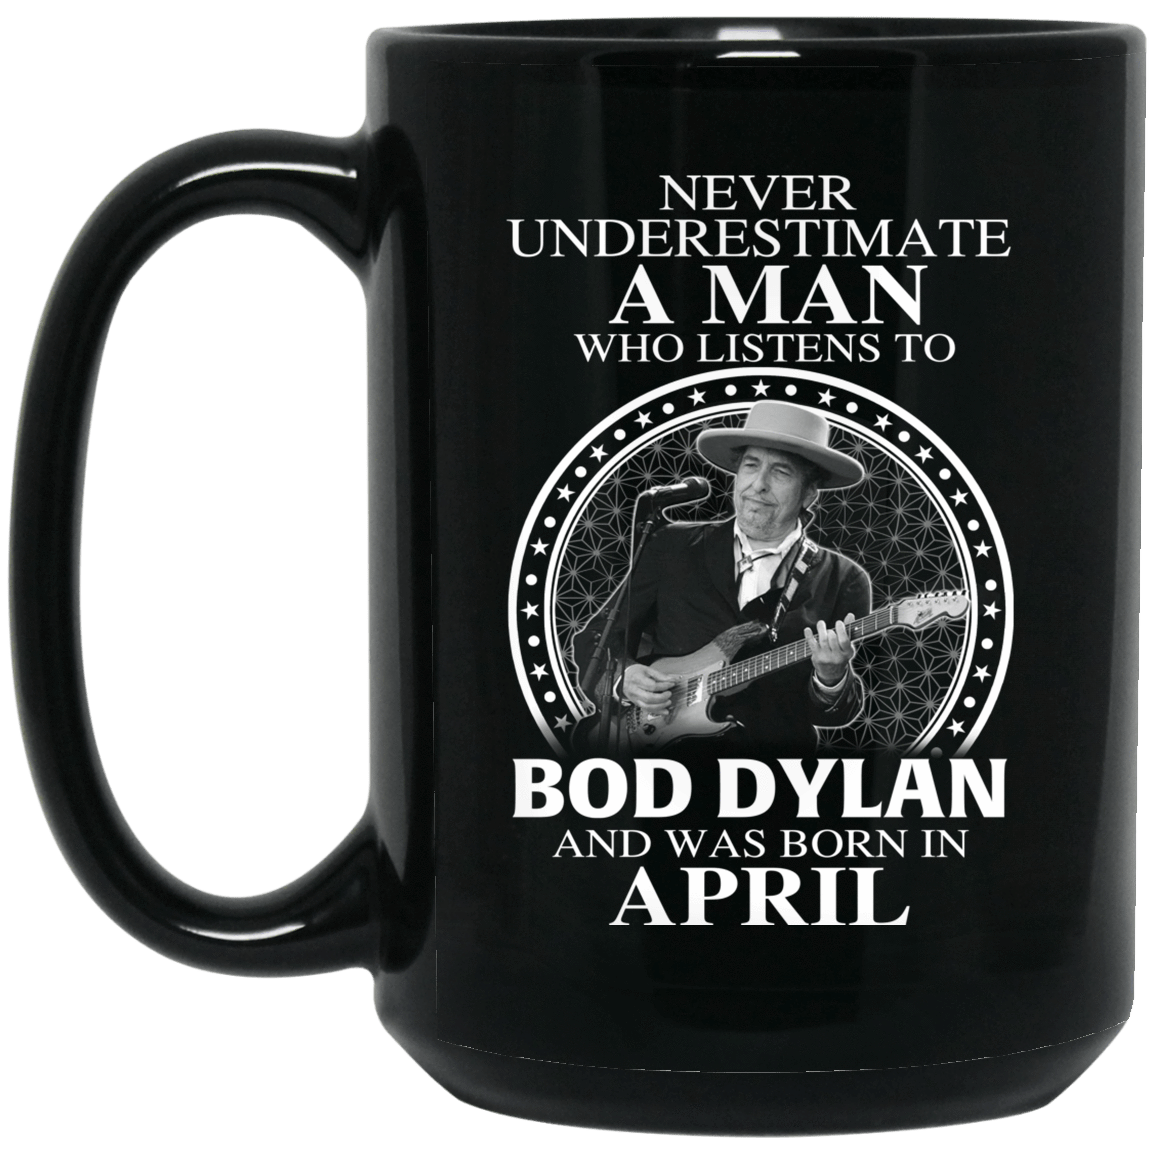 A Man Who Listens To Bob Dylan And Was Born In April Mug 1066-10182-76153616-49311 - Tee Ript